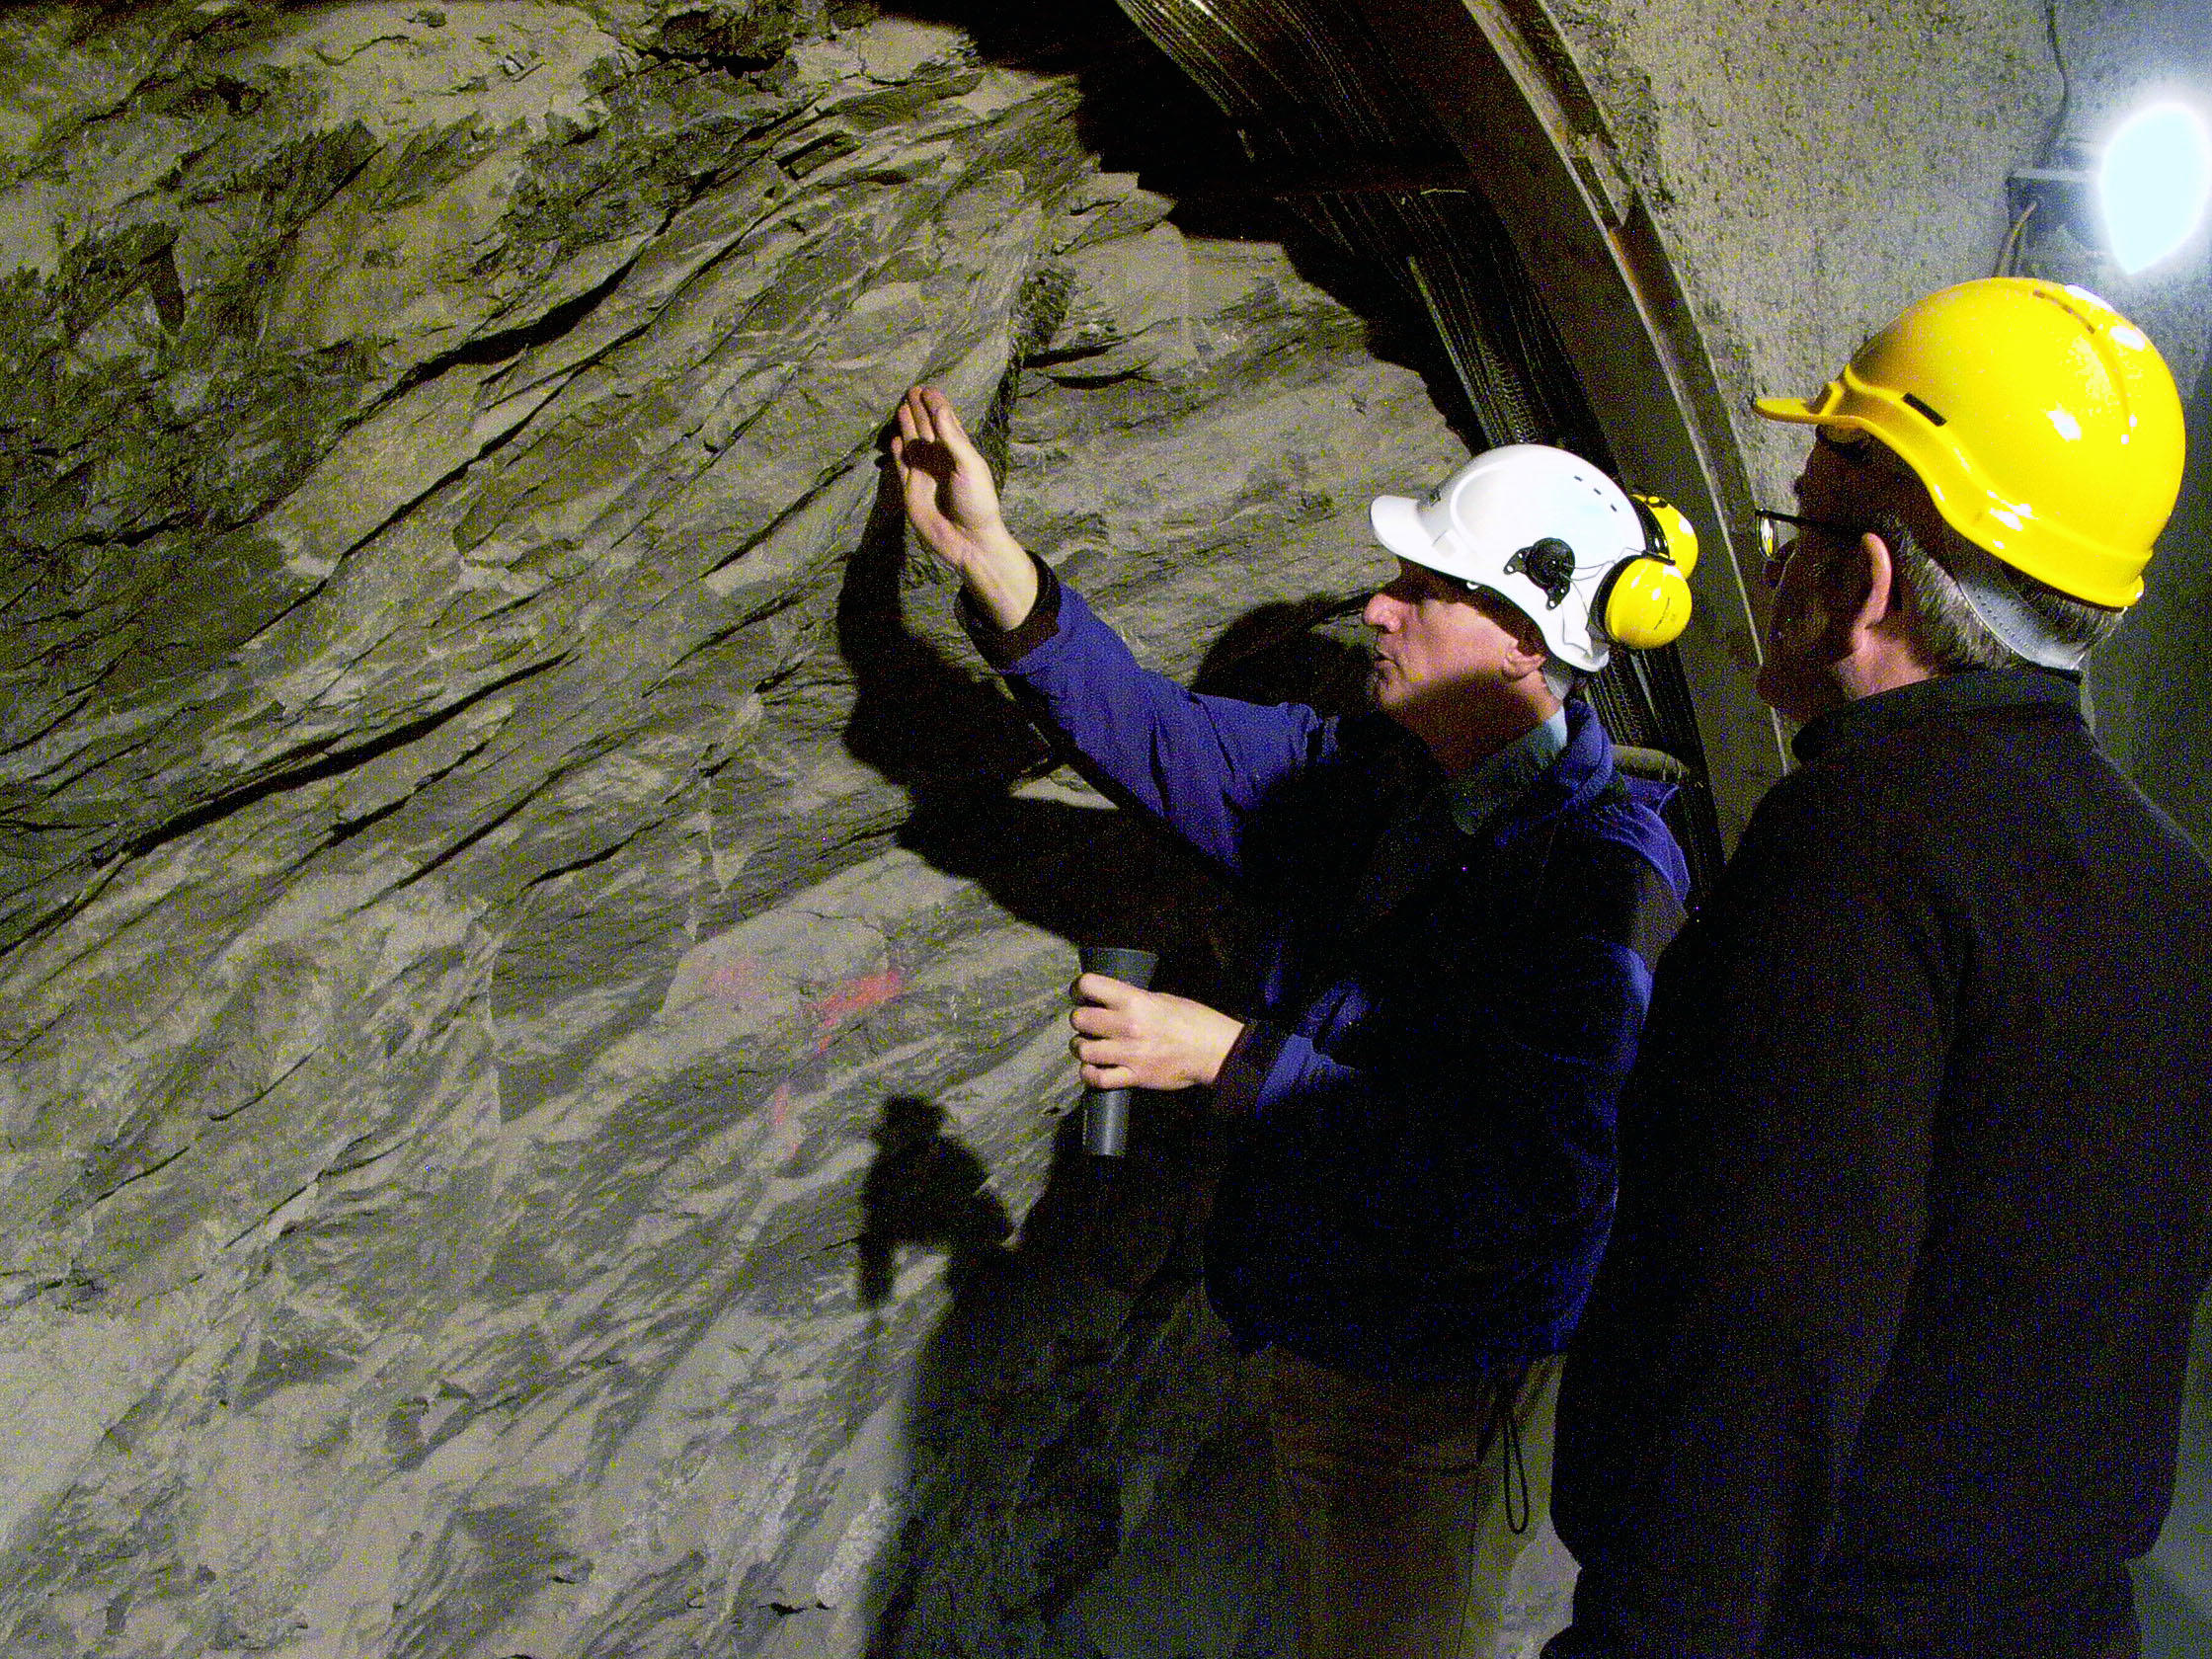 Researchers take a close look at an opaline layer, a key component of the Jura fold mountains.